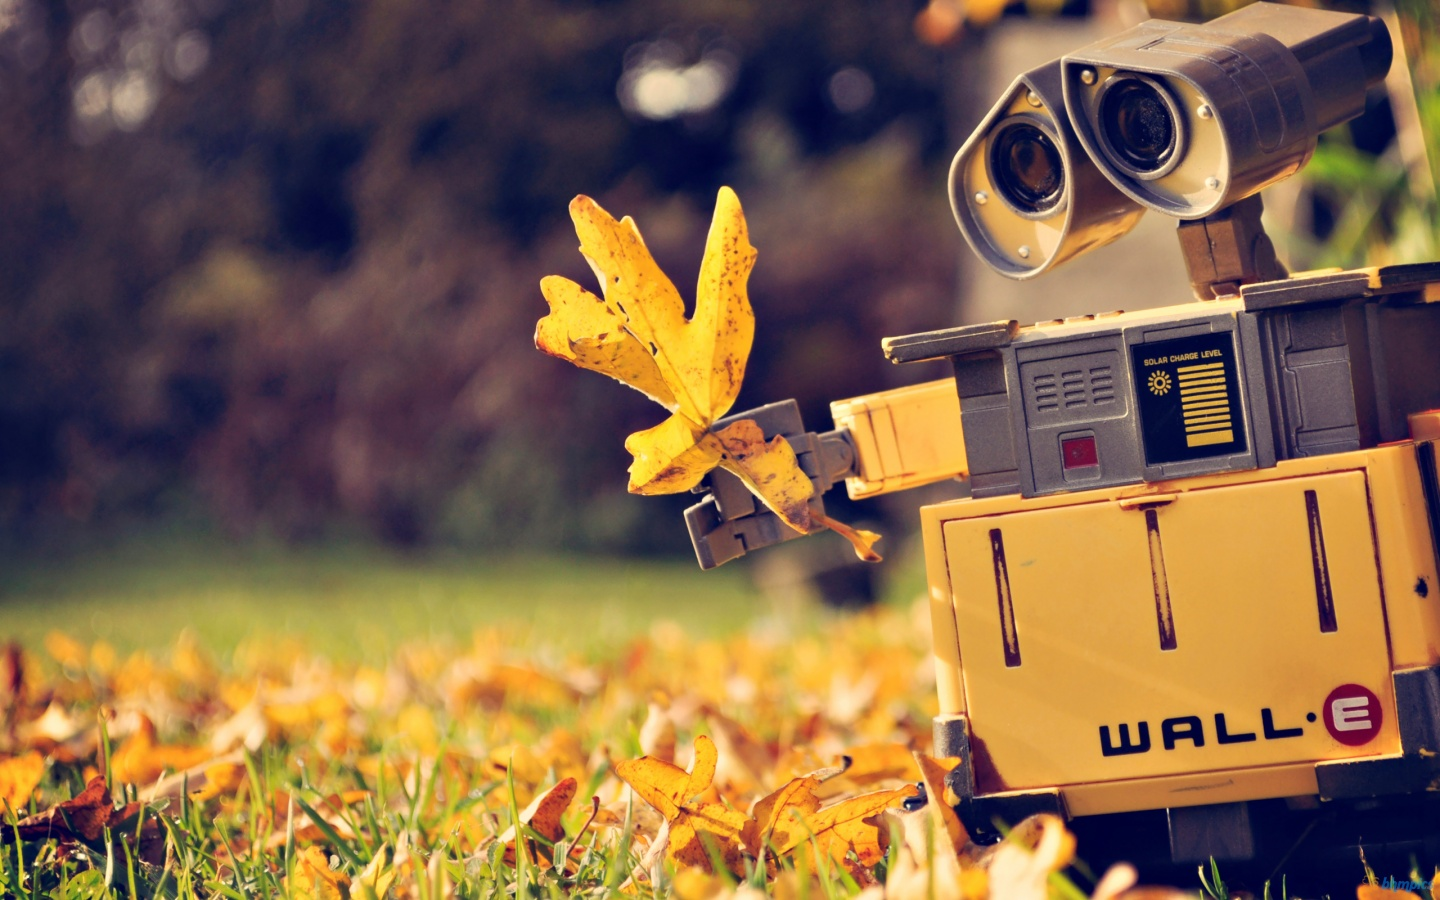 Cute Wall E Wallpaper